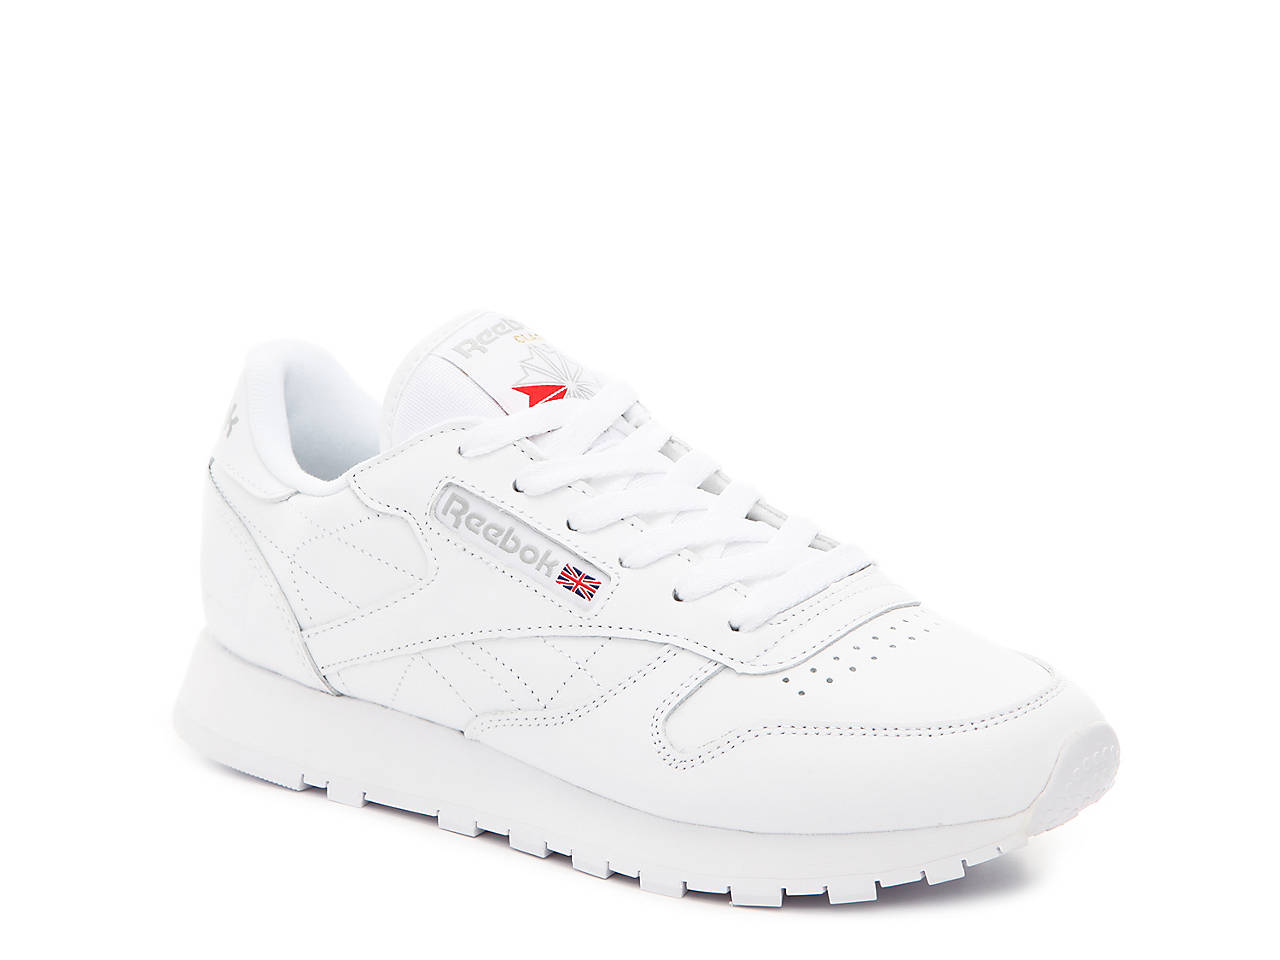 eabc03b2bf6 Reebok Classic Leather Sneaker - Women s Women s Shoes